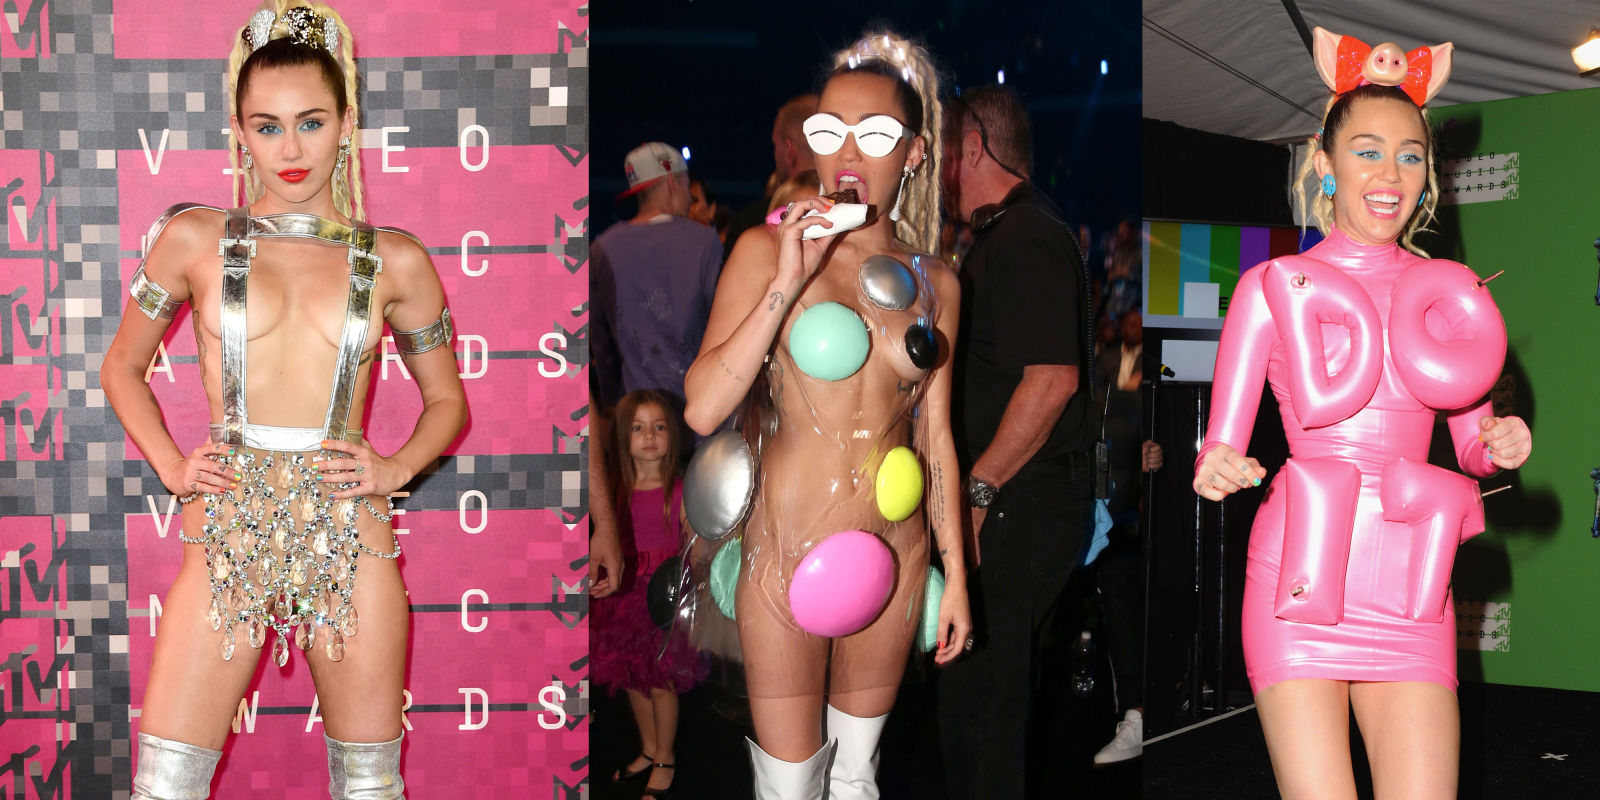 ... assets/15/36/1600x800/landscape-1441026942-miley-cyrus-vma-outfits.jpg